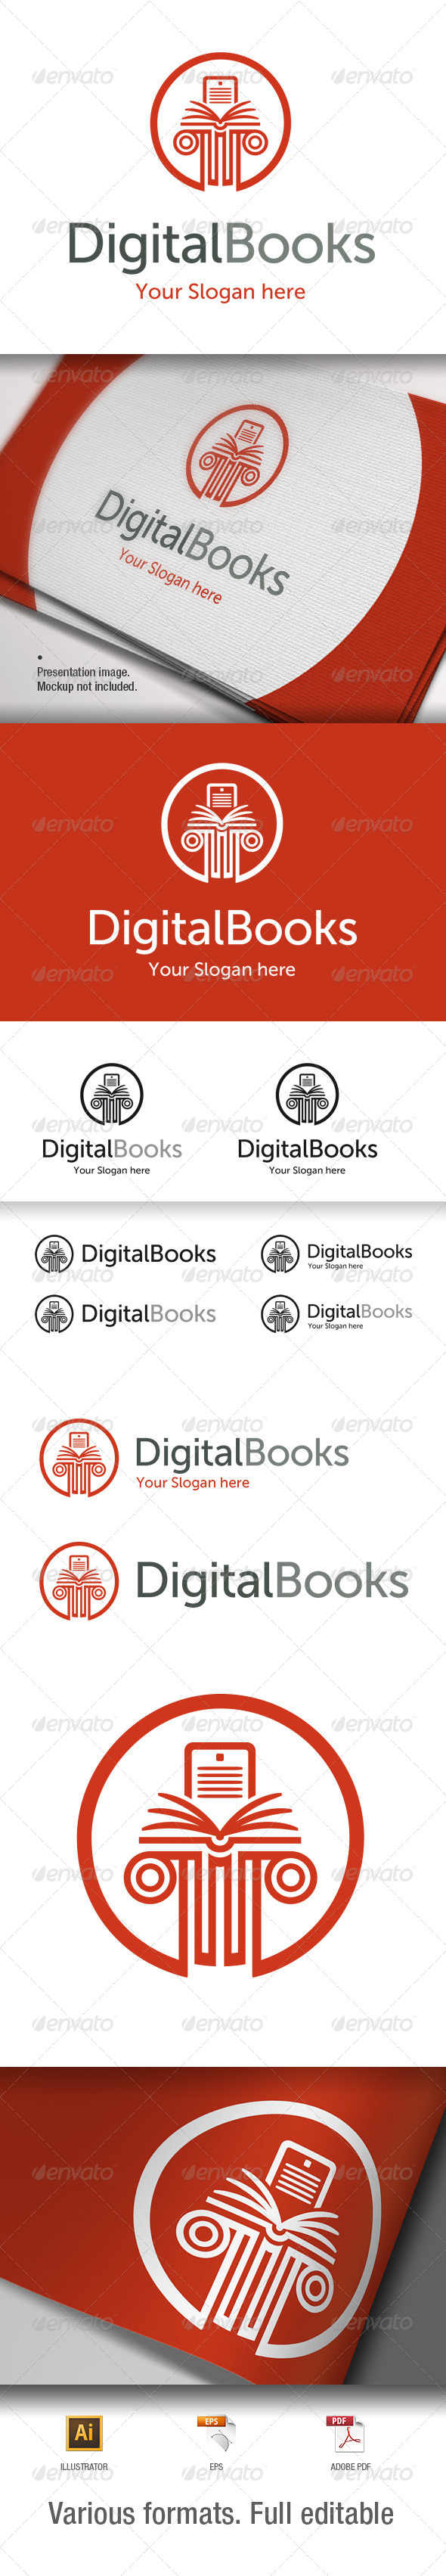 Digital Books Logo Template - V1 - Objects Logo Templates